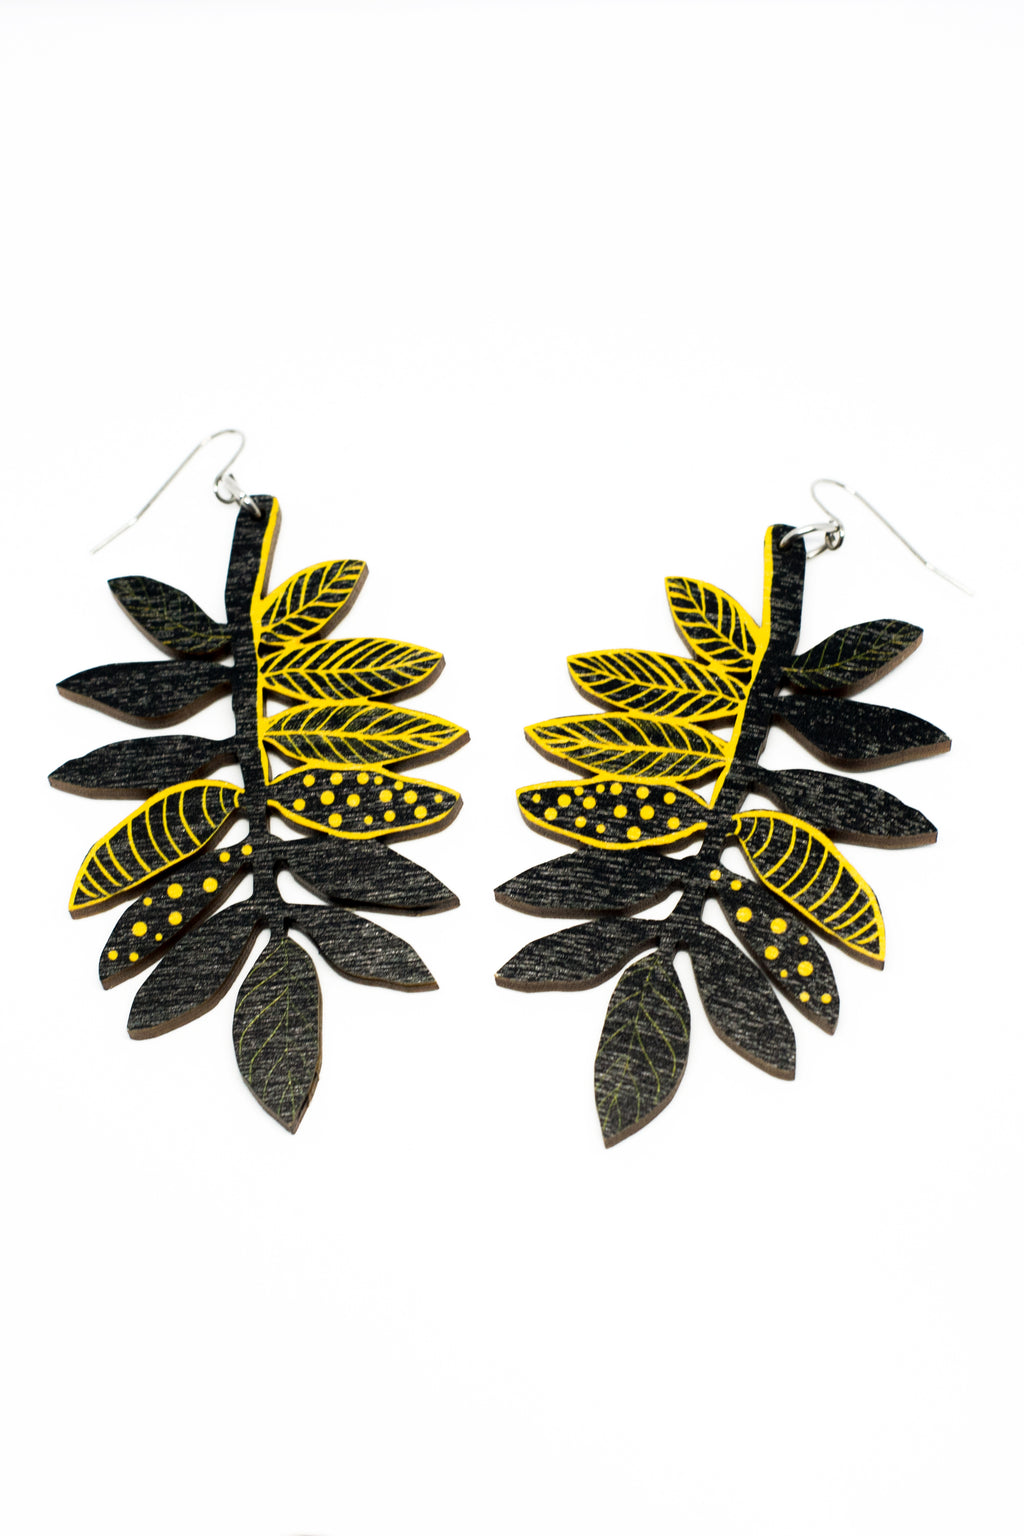 Rowan Leaf Earrings, Black/Yellow, Wood